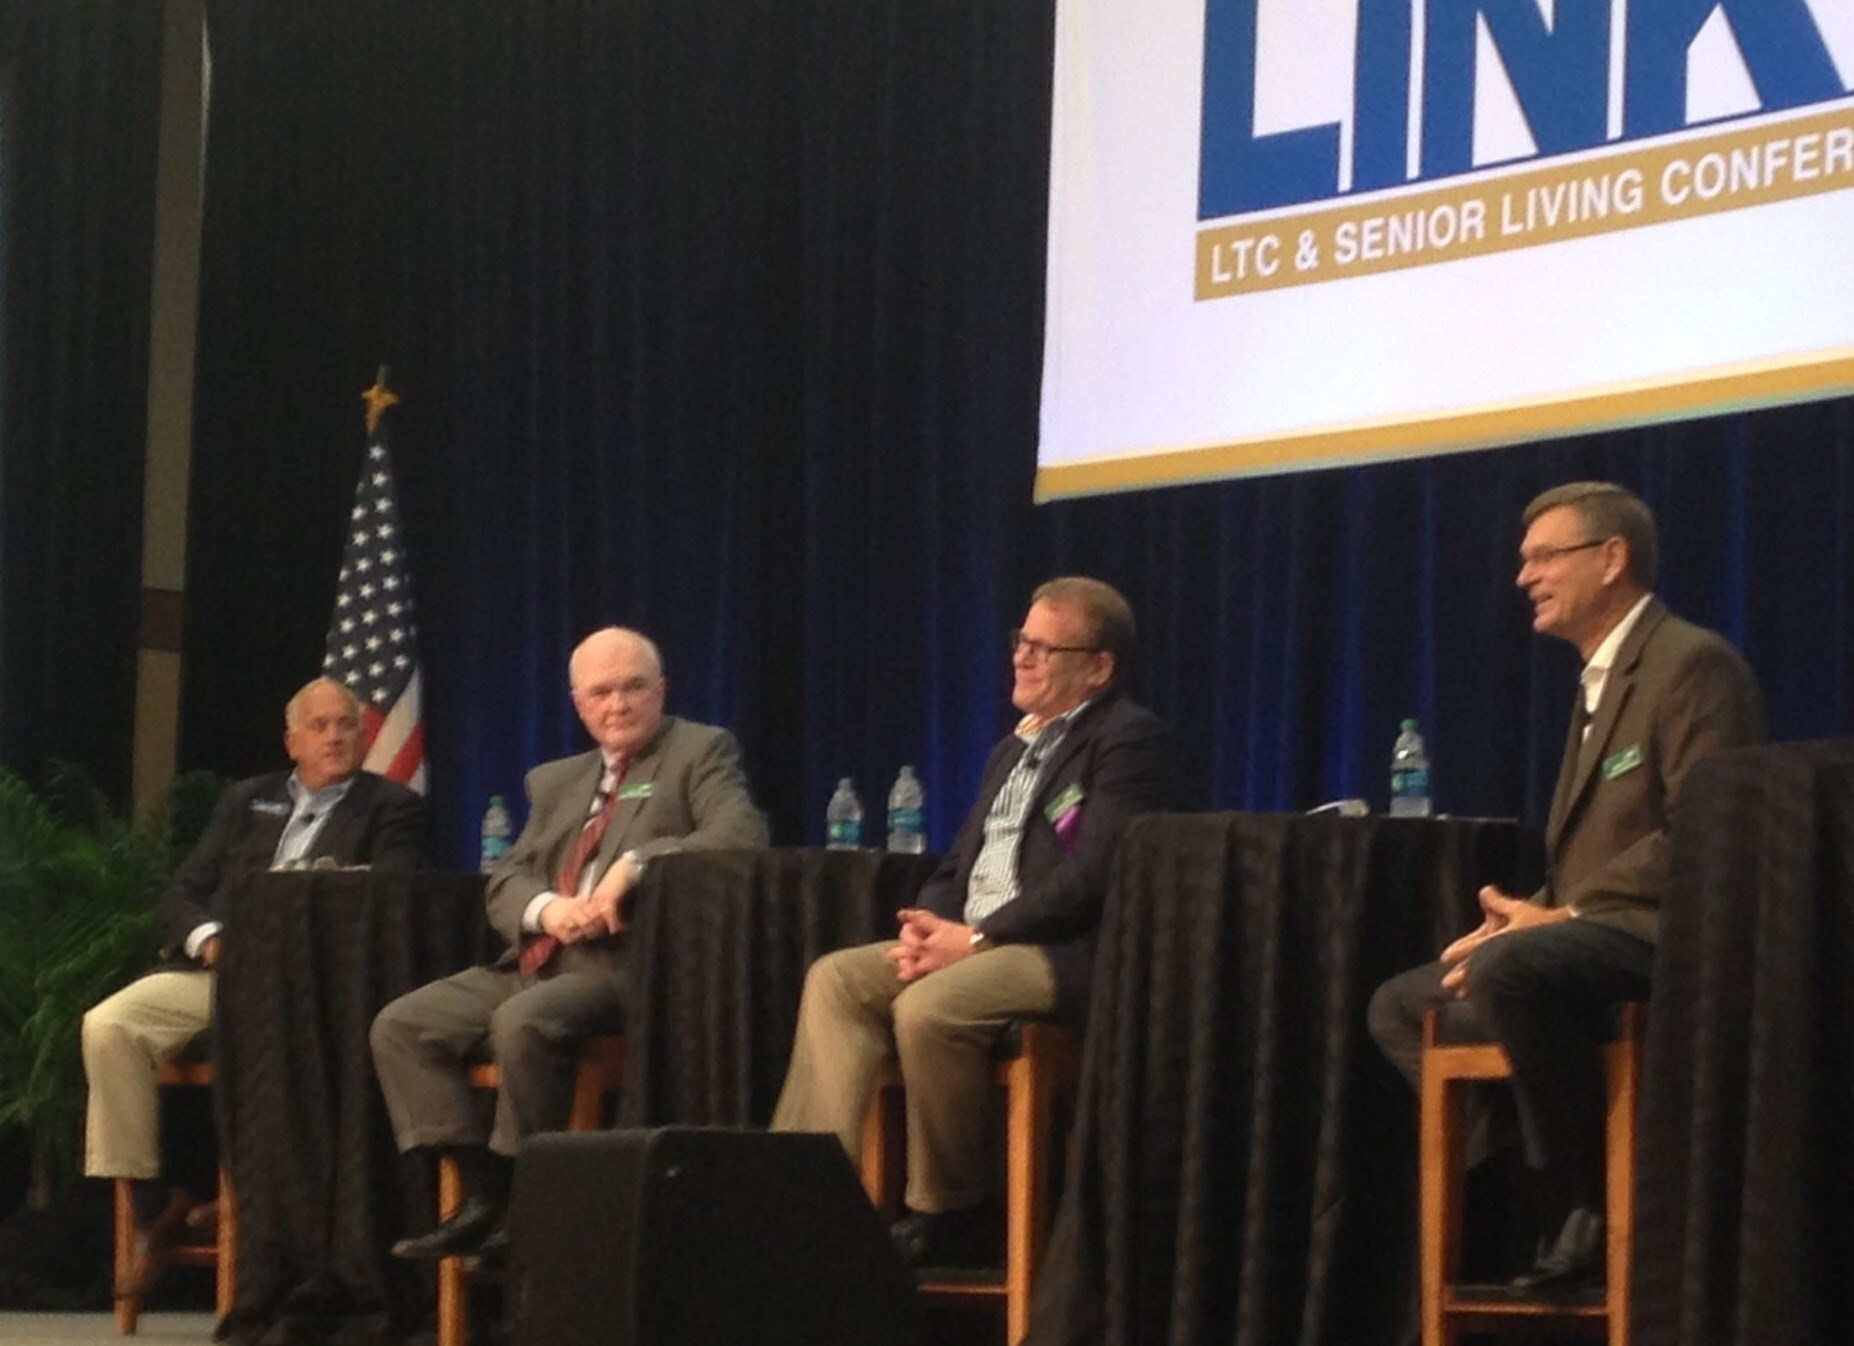 Long-term care leaders need self-awareness, partnerships to avoid the 'Founder's Trap,' CEO panel advises